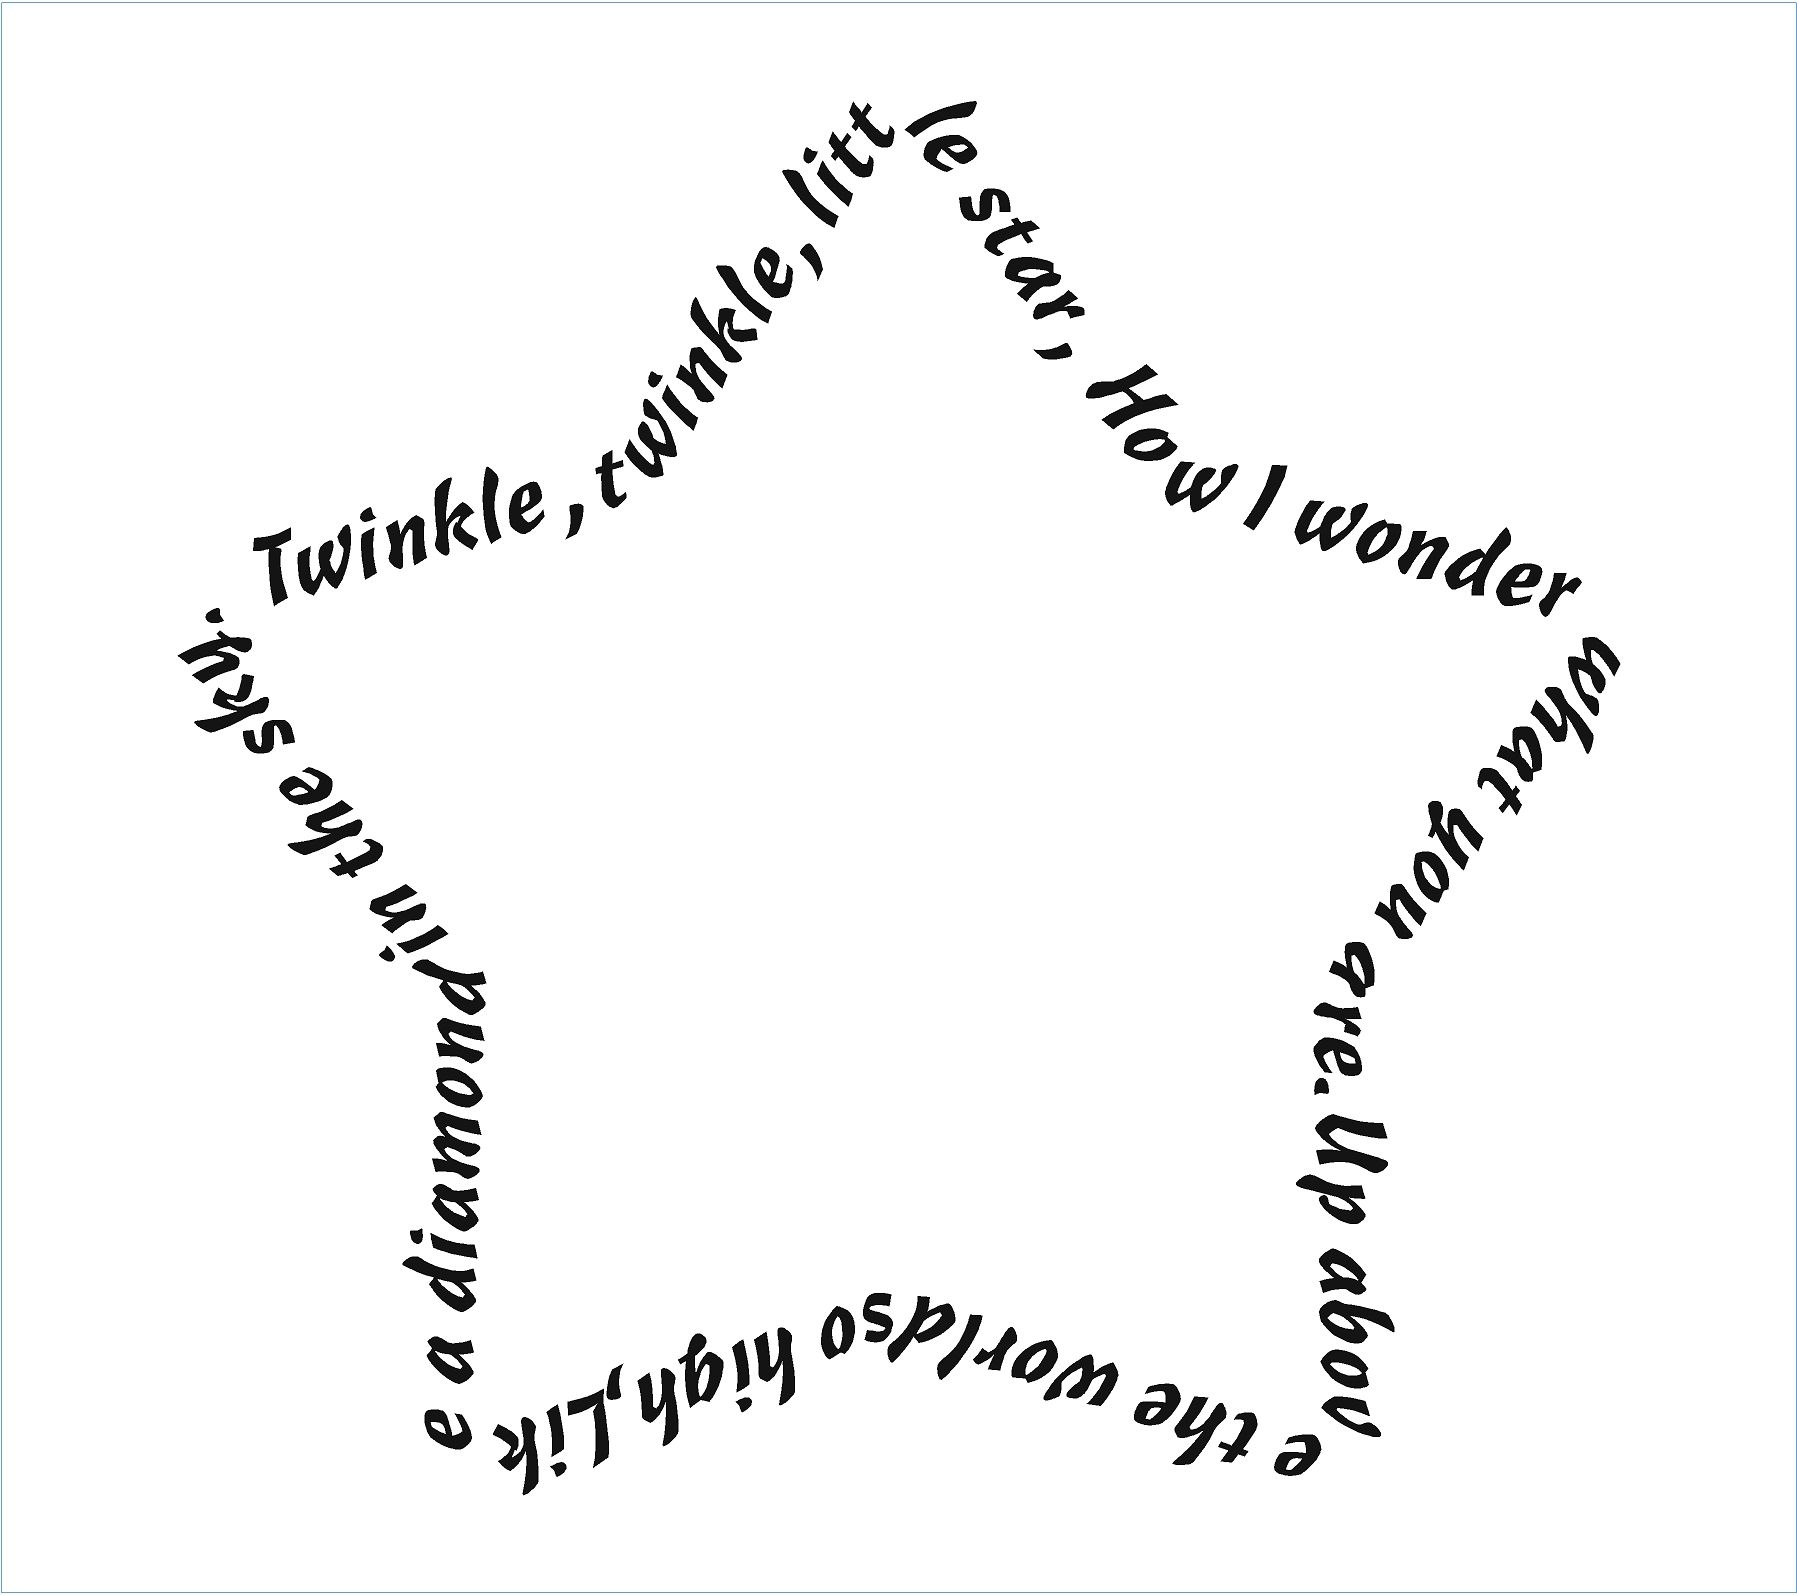 twinkle twinkle little star coloring page - twinkle twinkle little star c utare google twinkle